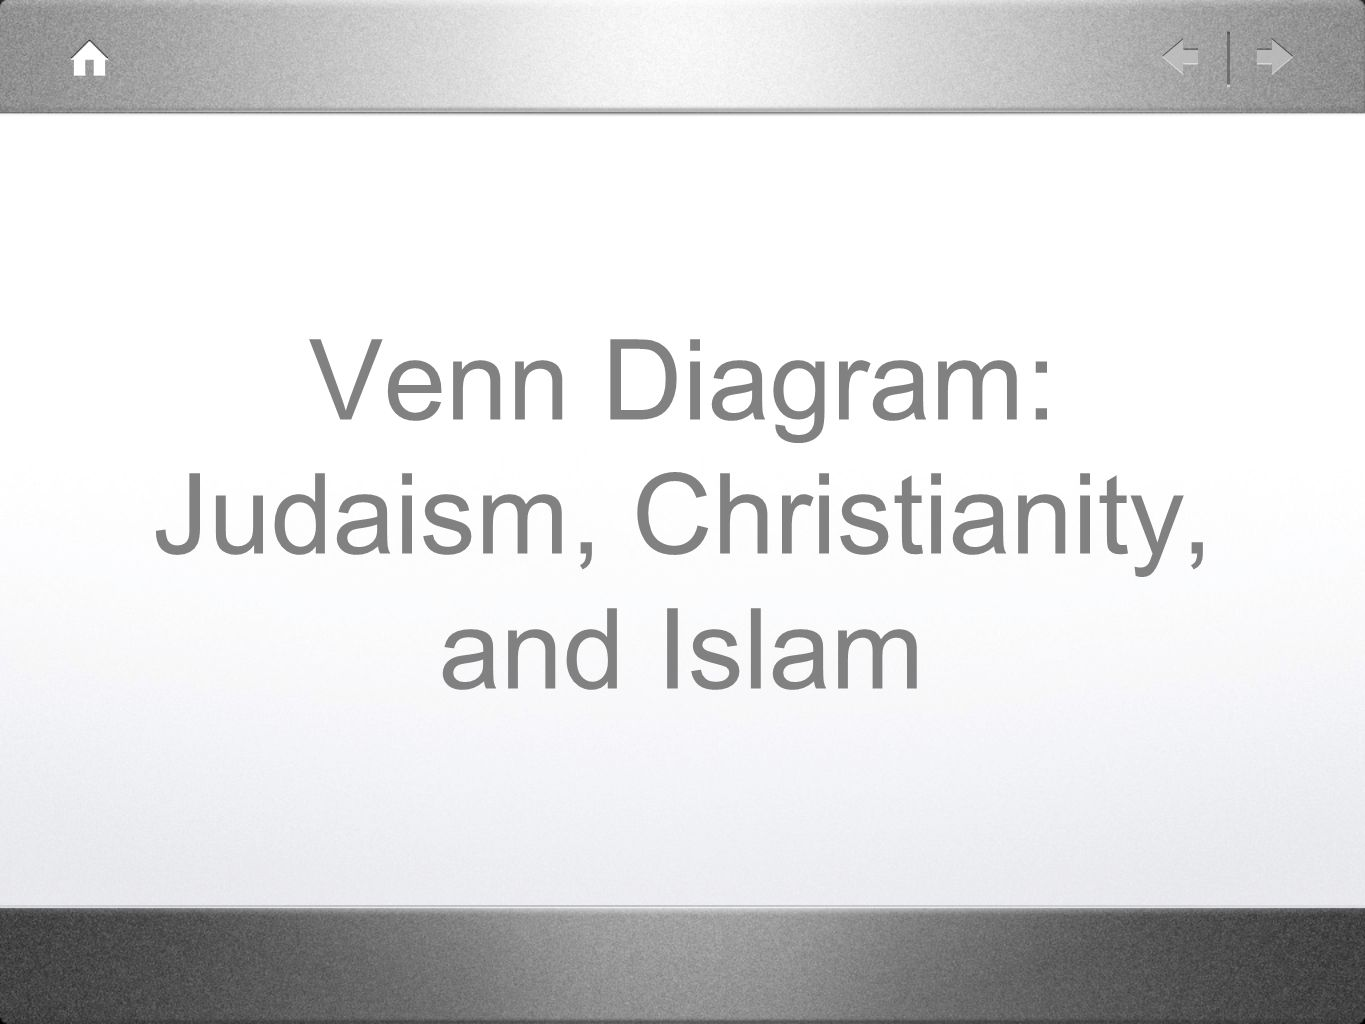 Venn Diagram: Judaism, Christianity, and Islam - ppt download